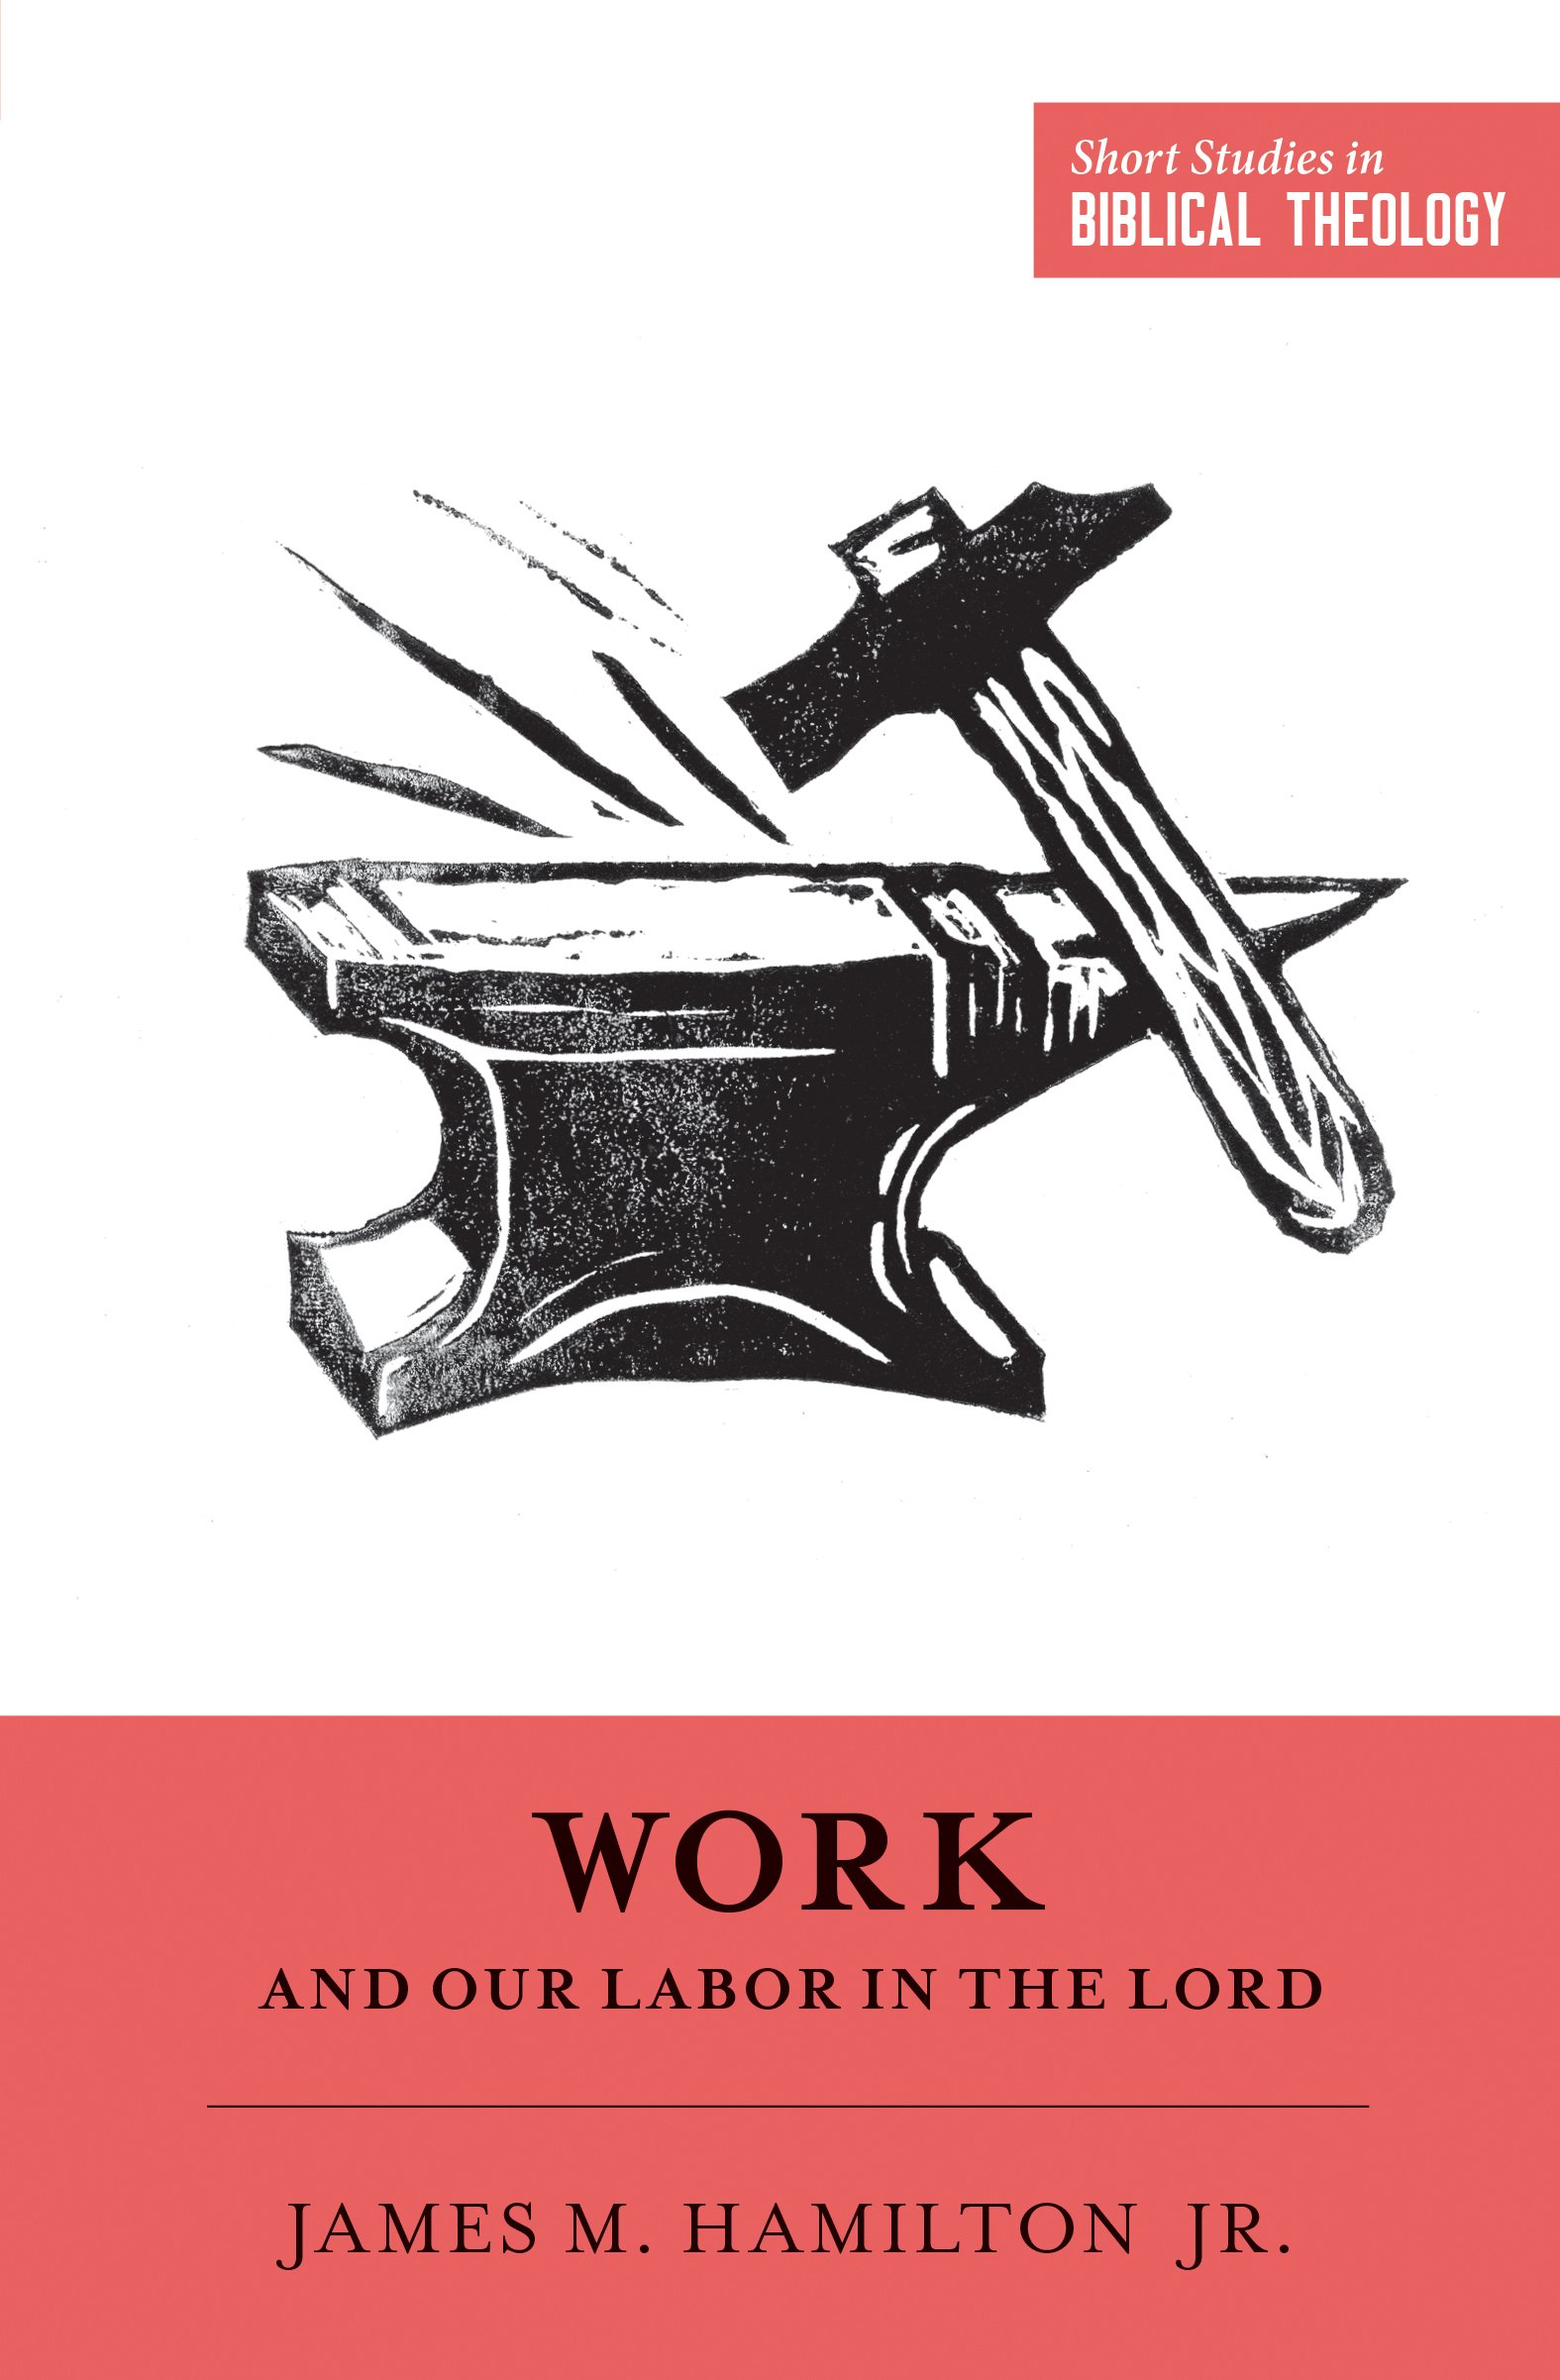 Work and Our Labor in the Lord (Short Studies in Biblical Theology) by  James M. Hamilton Jr. BOOK CLUB | Coram Deo ~